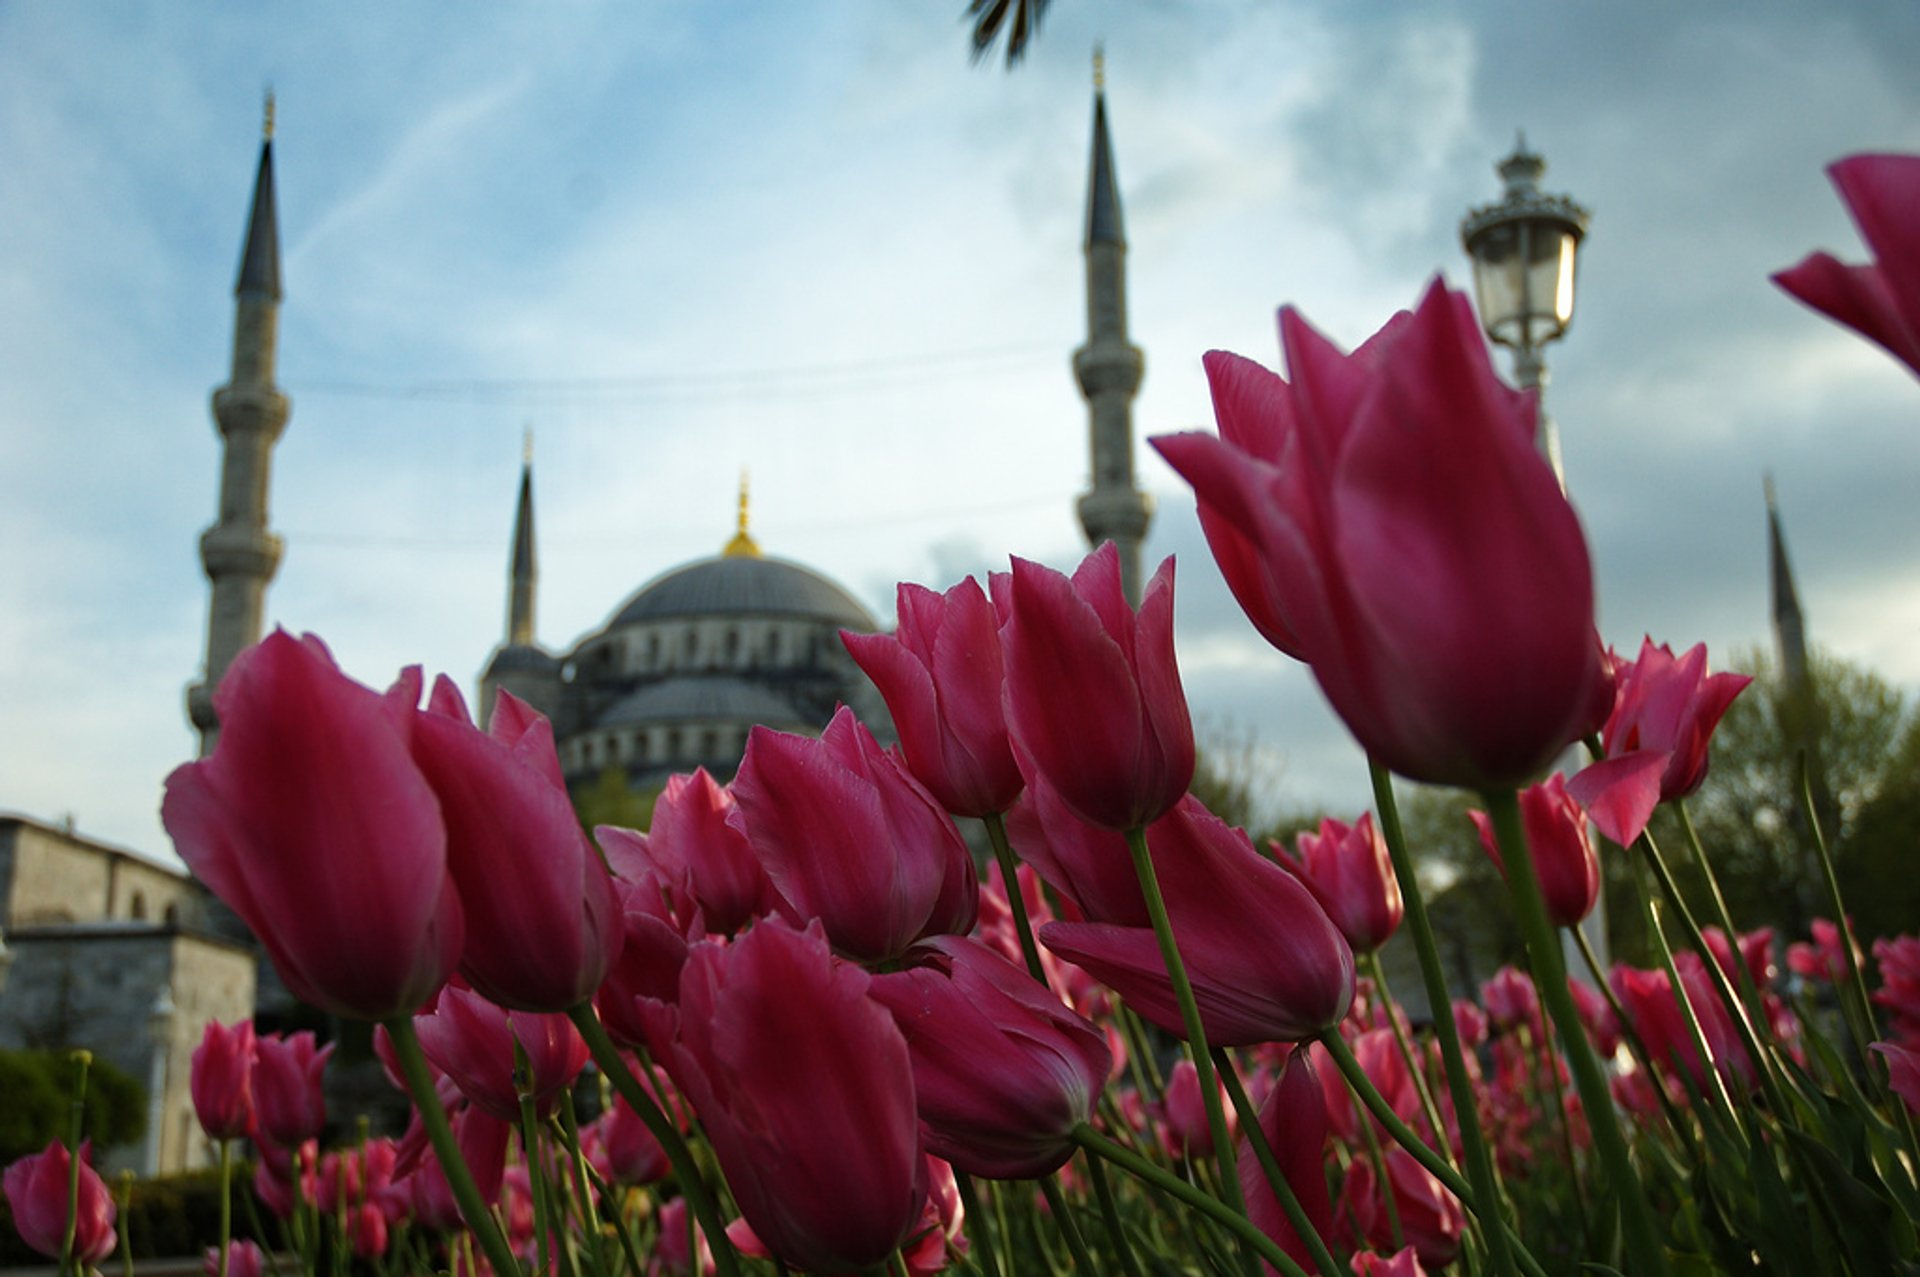 Tulips near Sultan Ahmet Mosque (Blue Mosque) 2020